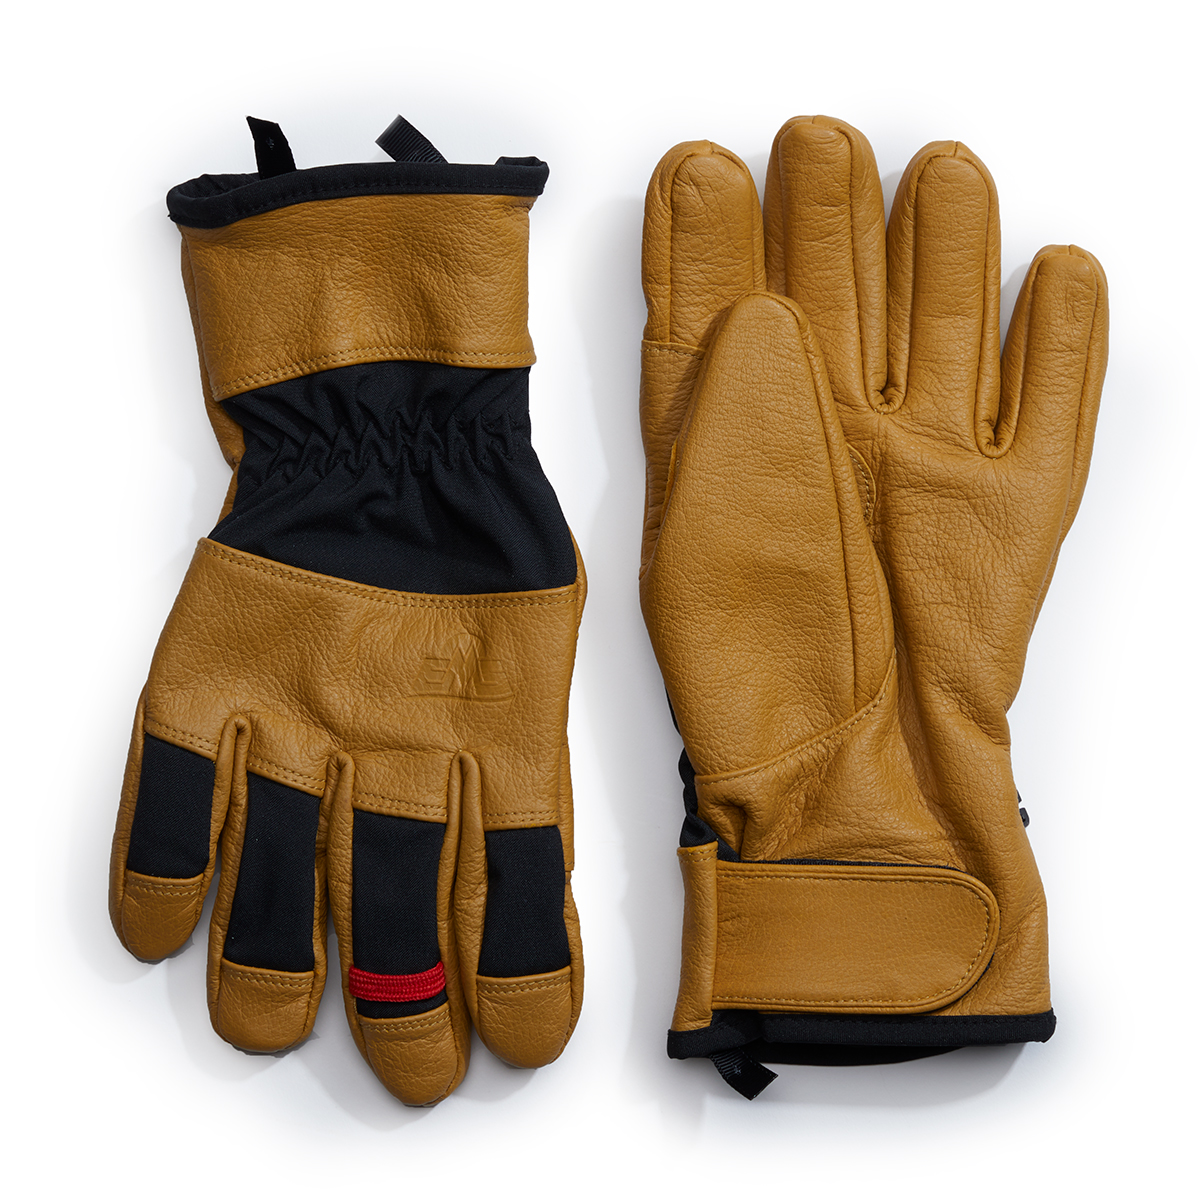 Ems Men's Leather Field Glove - Yellow, M